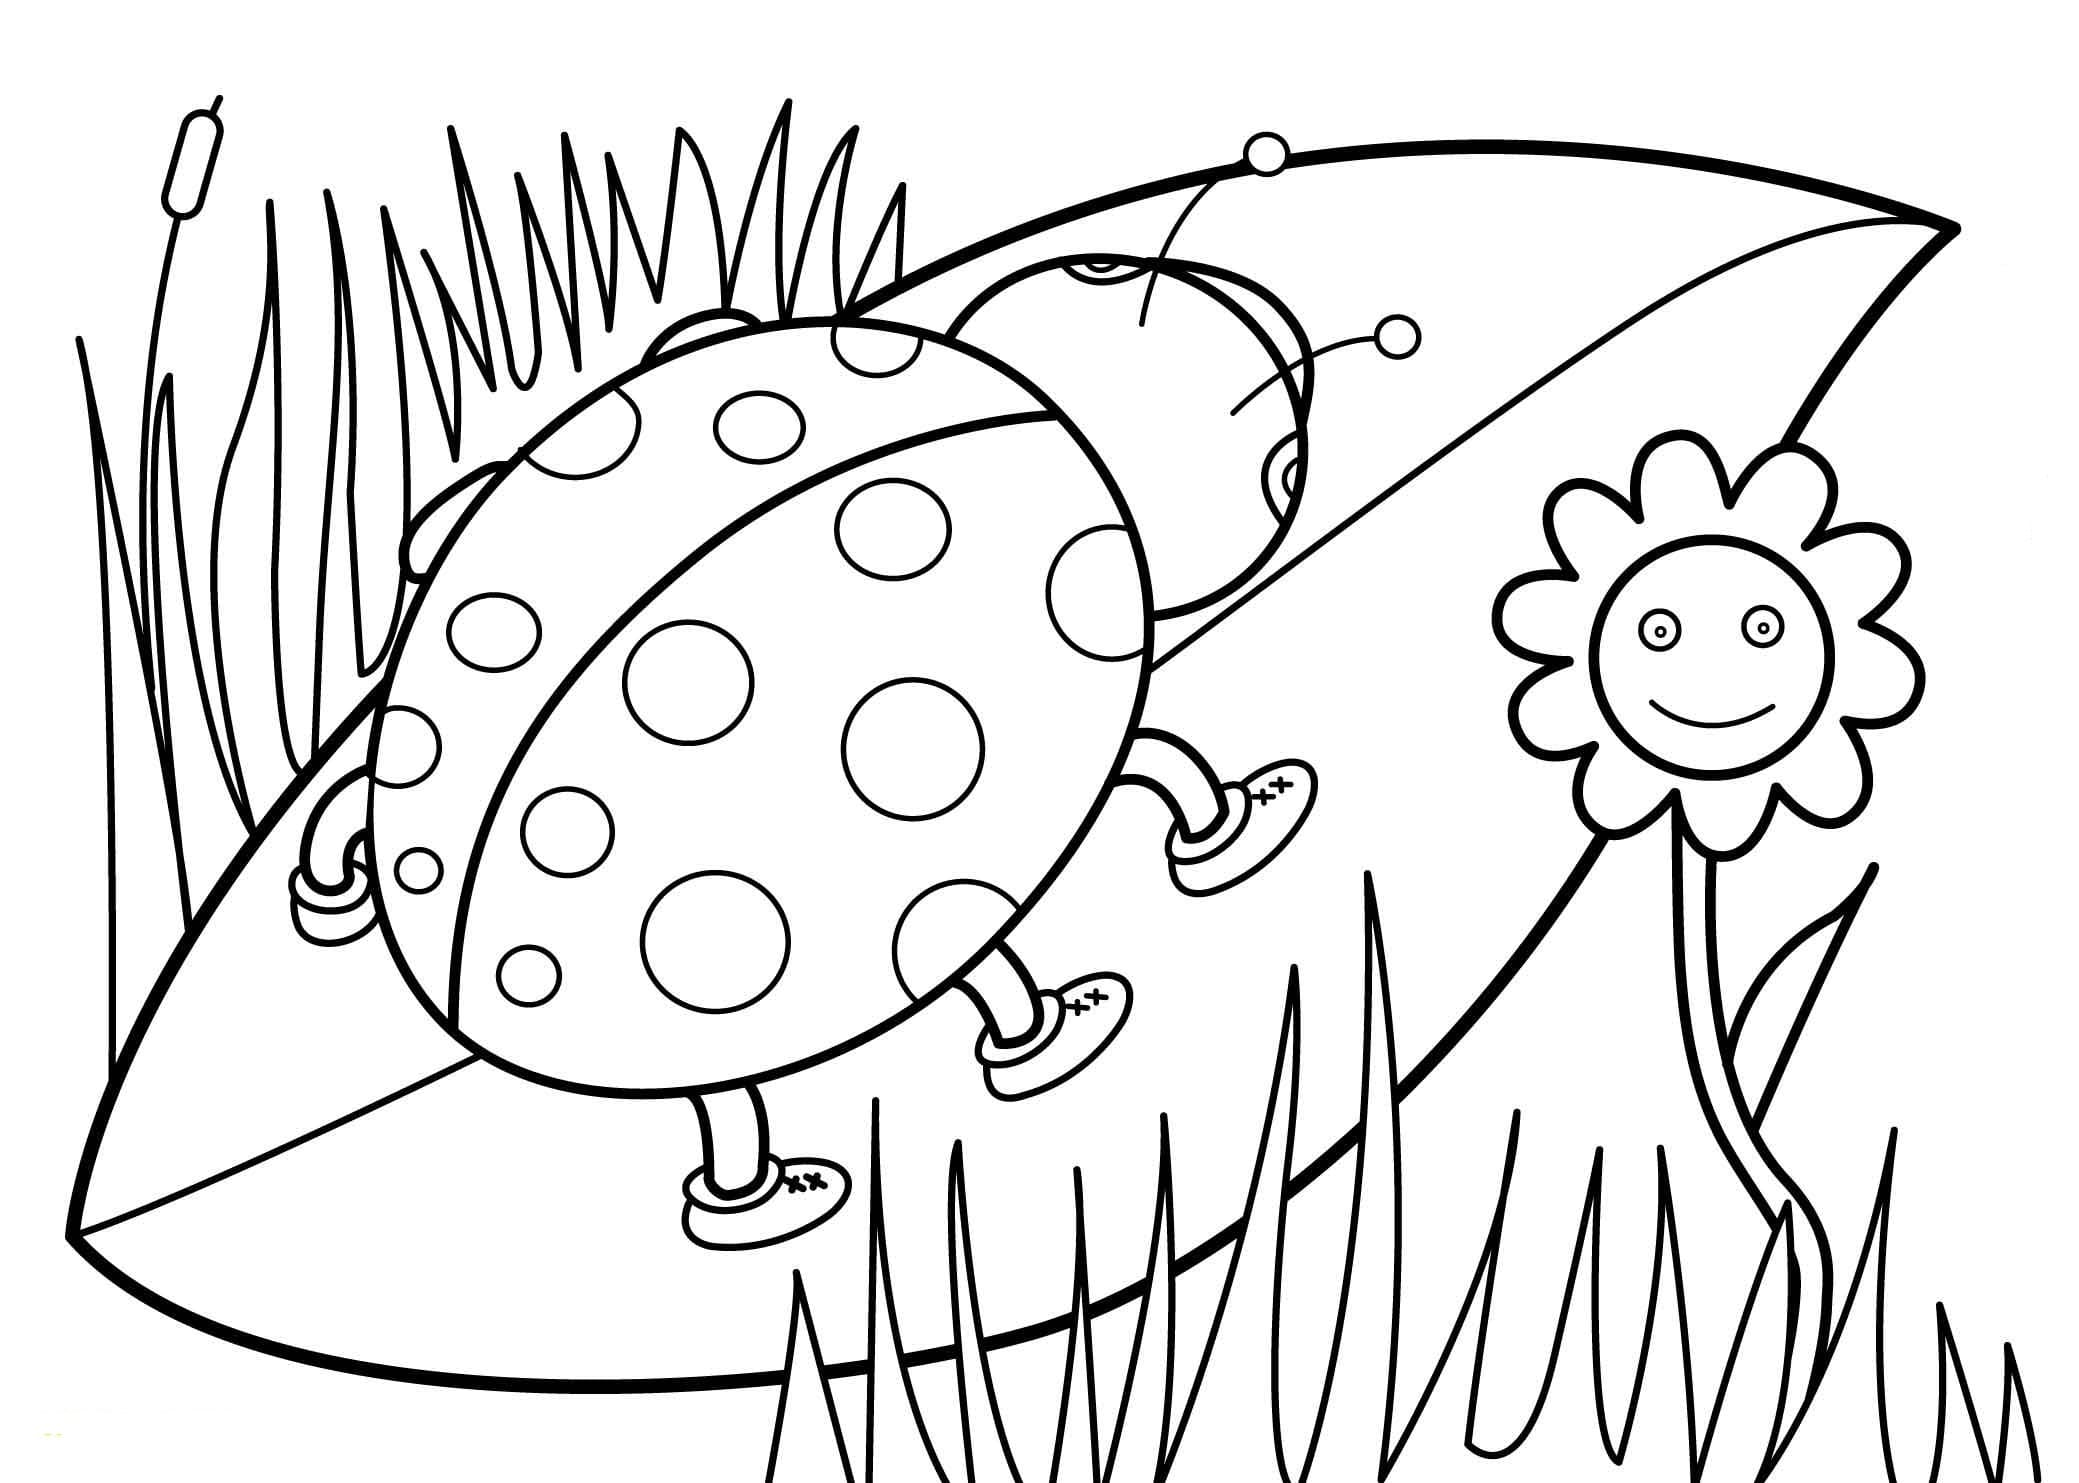 Coloring Pages Spring. Color the spring in the brightest colors